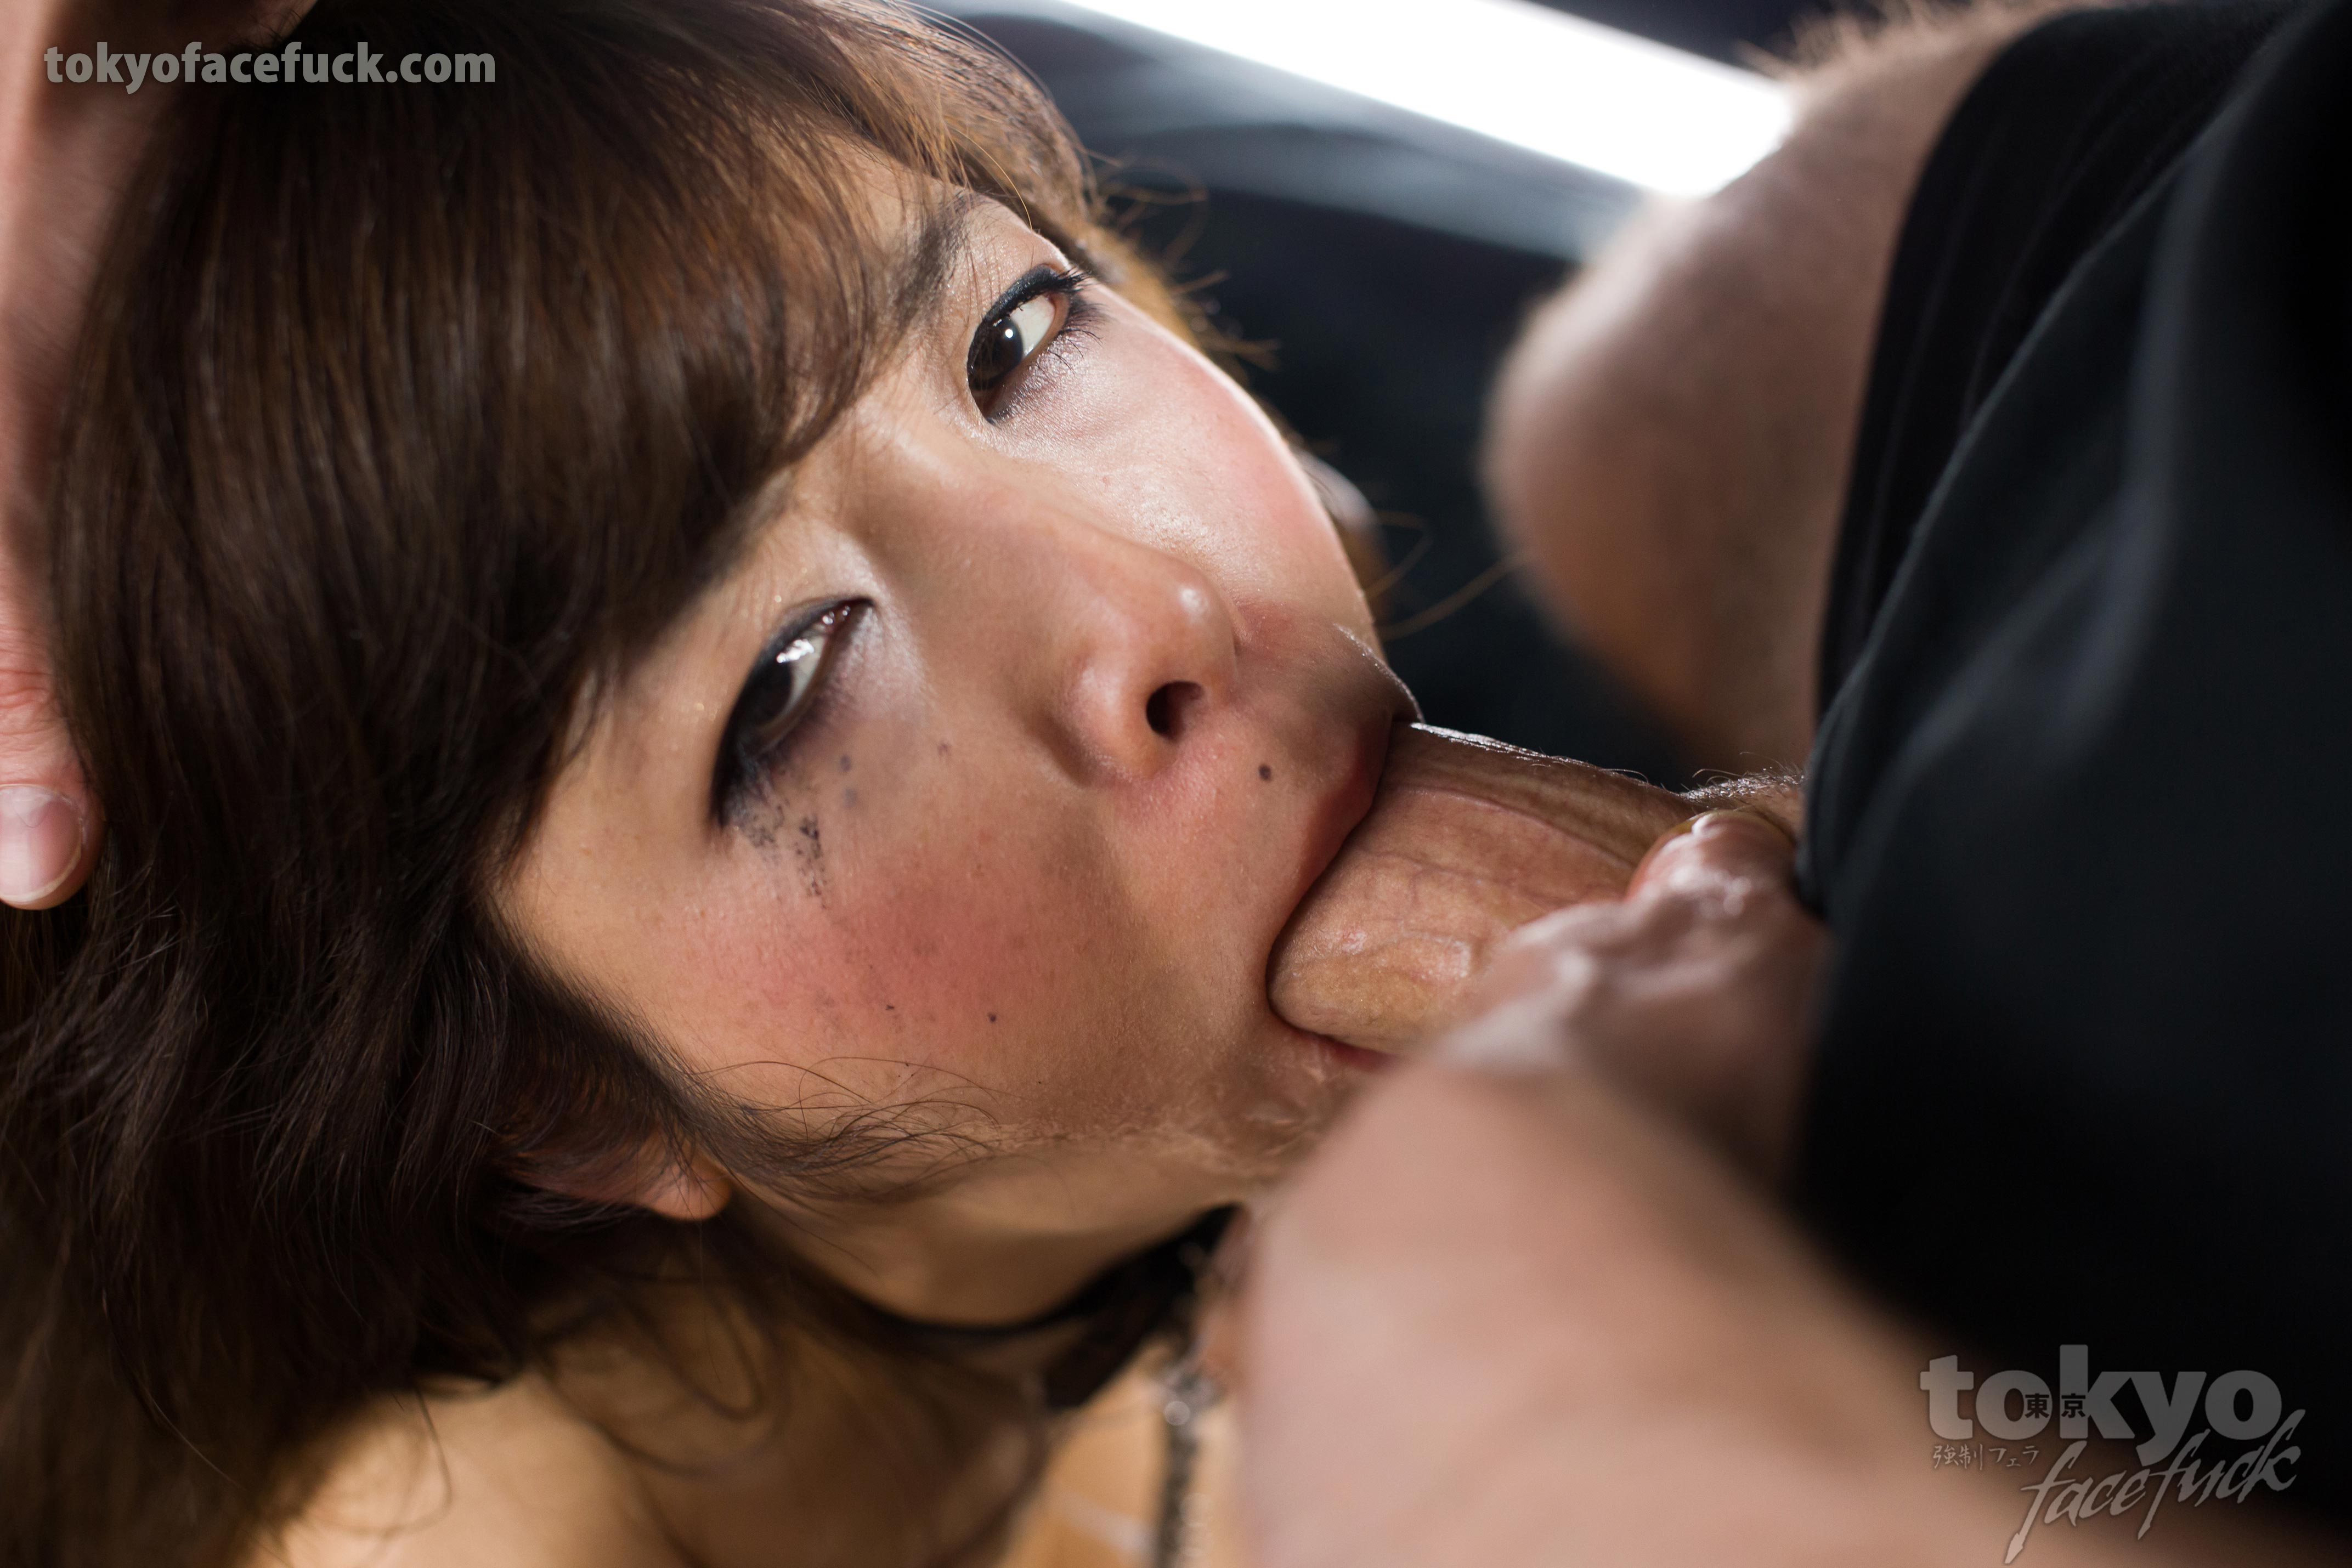 He finds his gf toying his mom 3